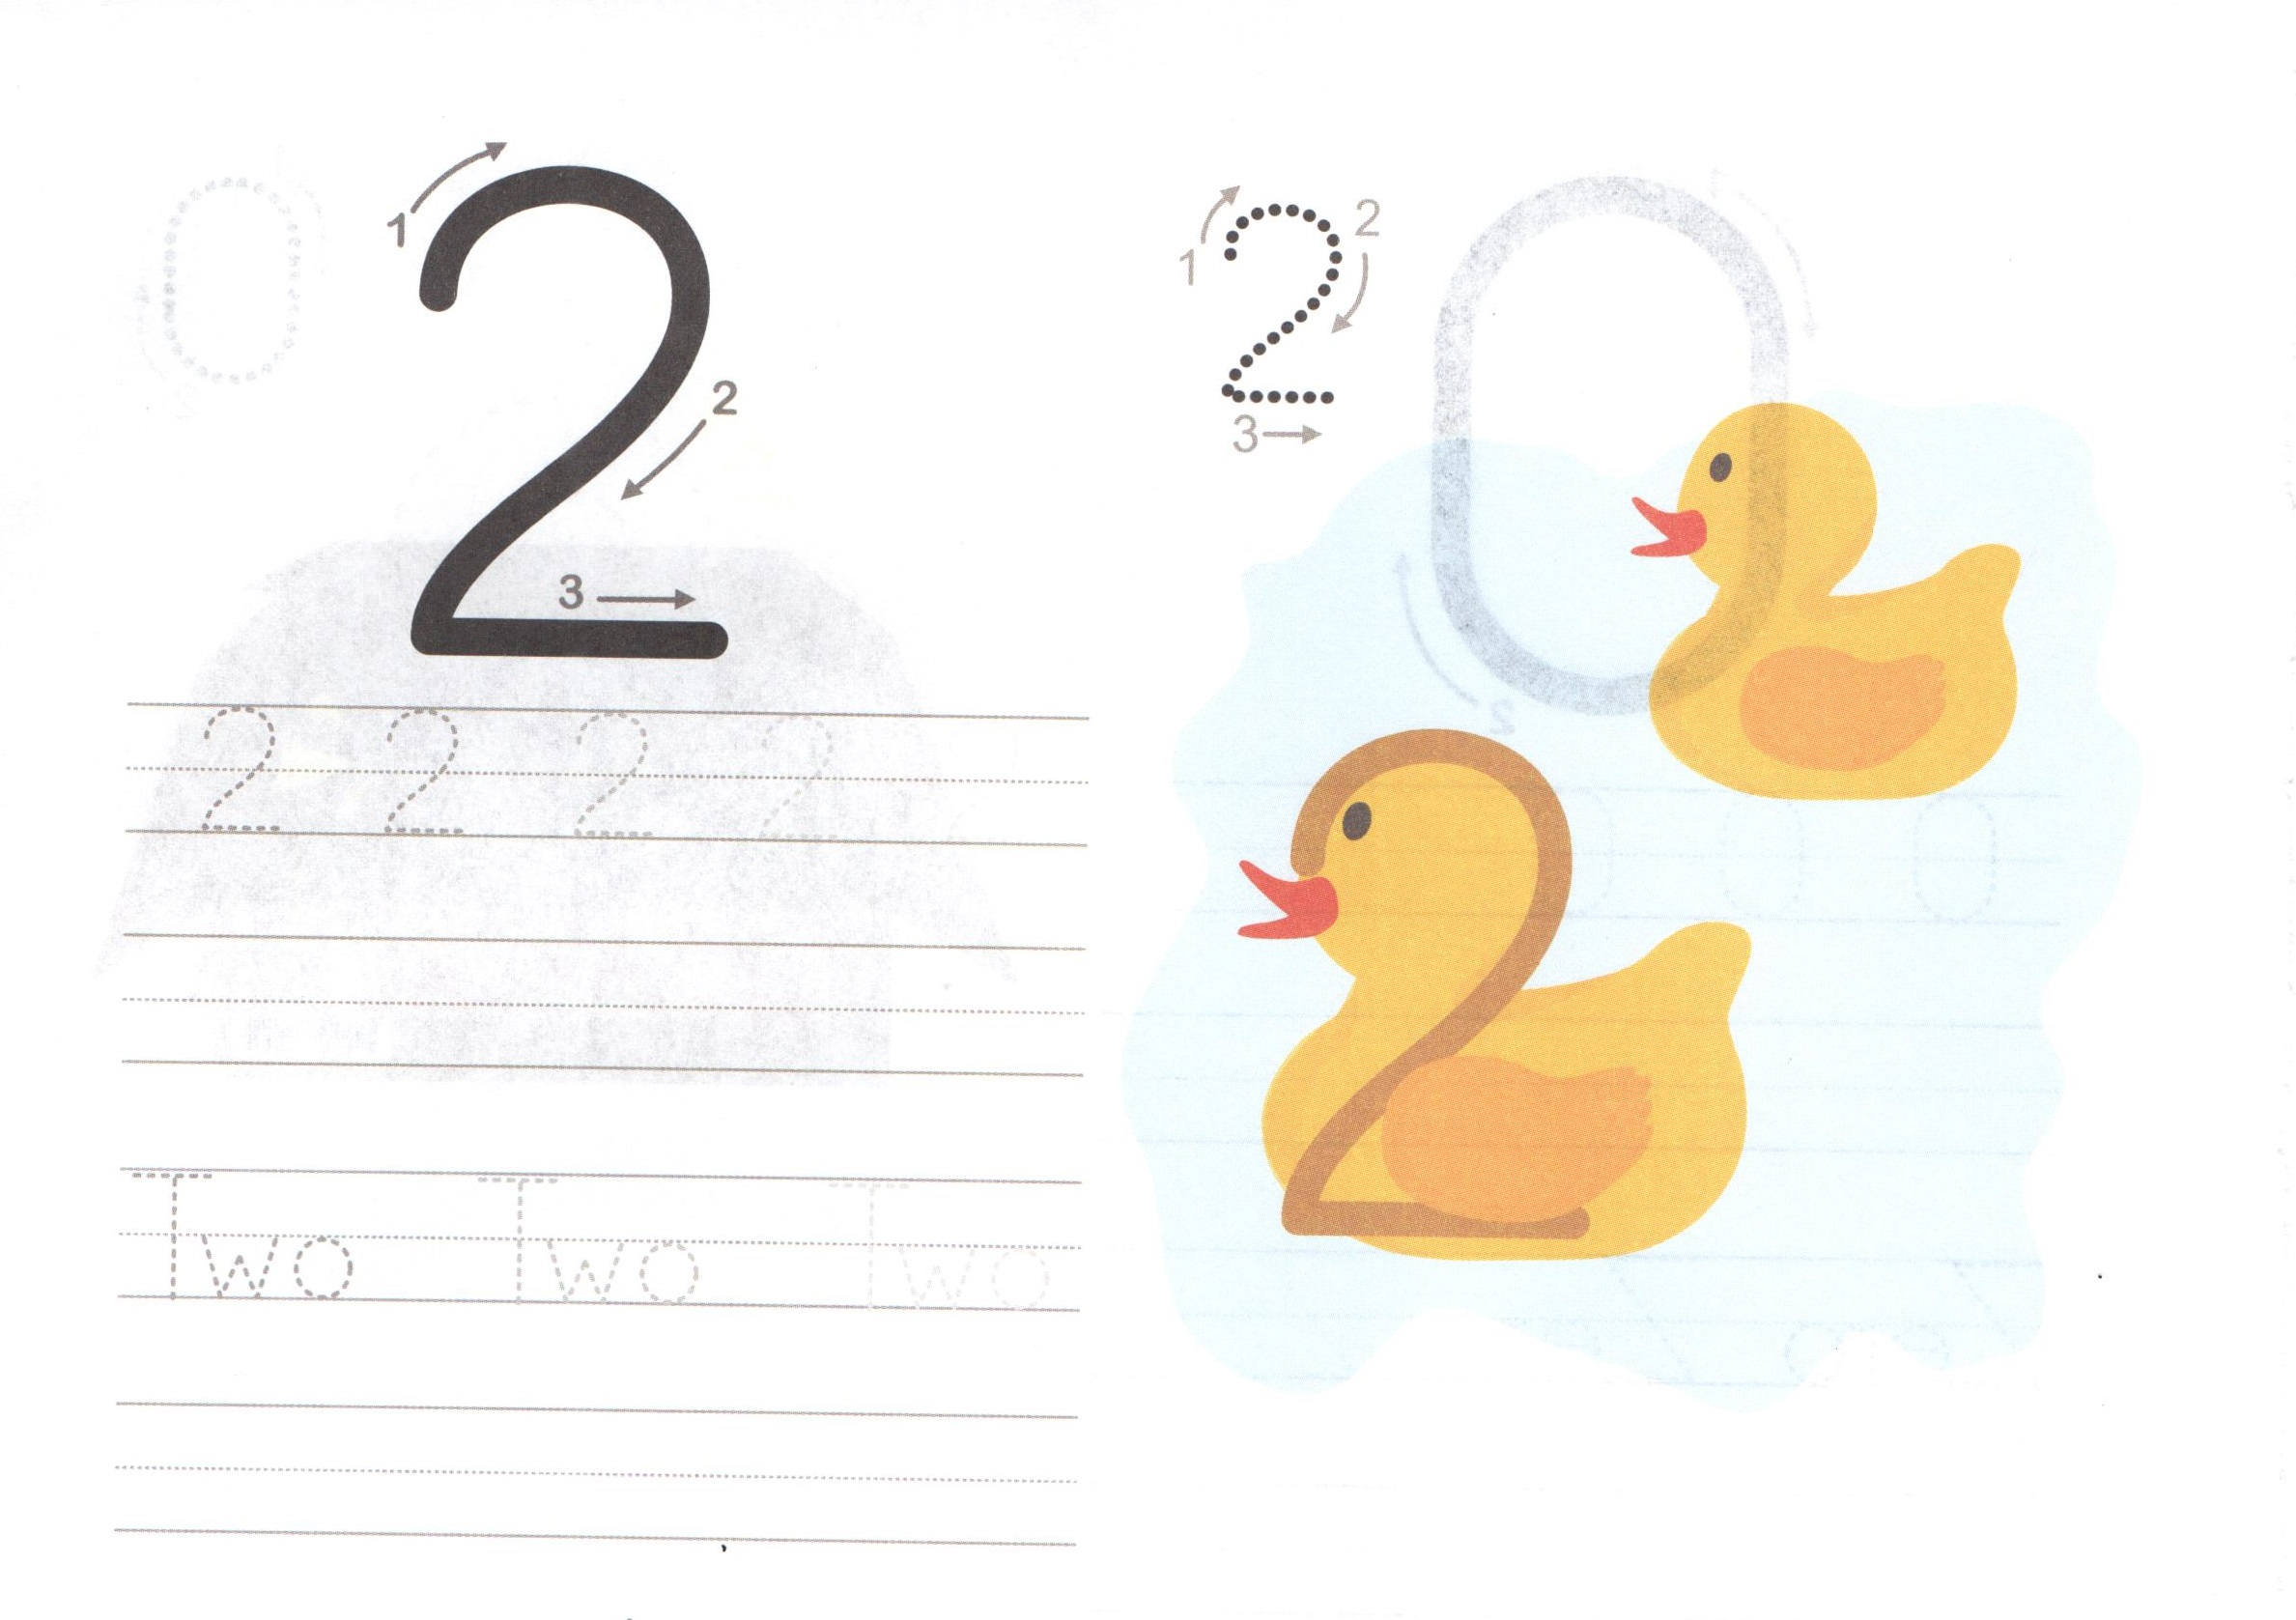 Two 2 Worksheet For Learning Numbers